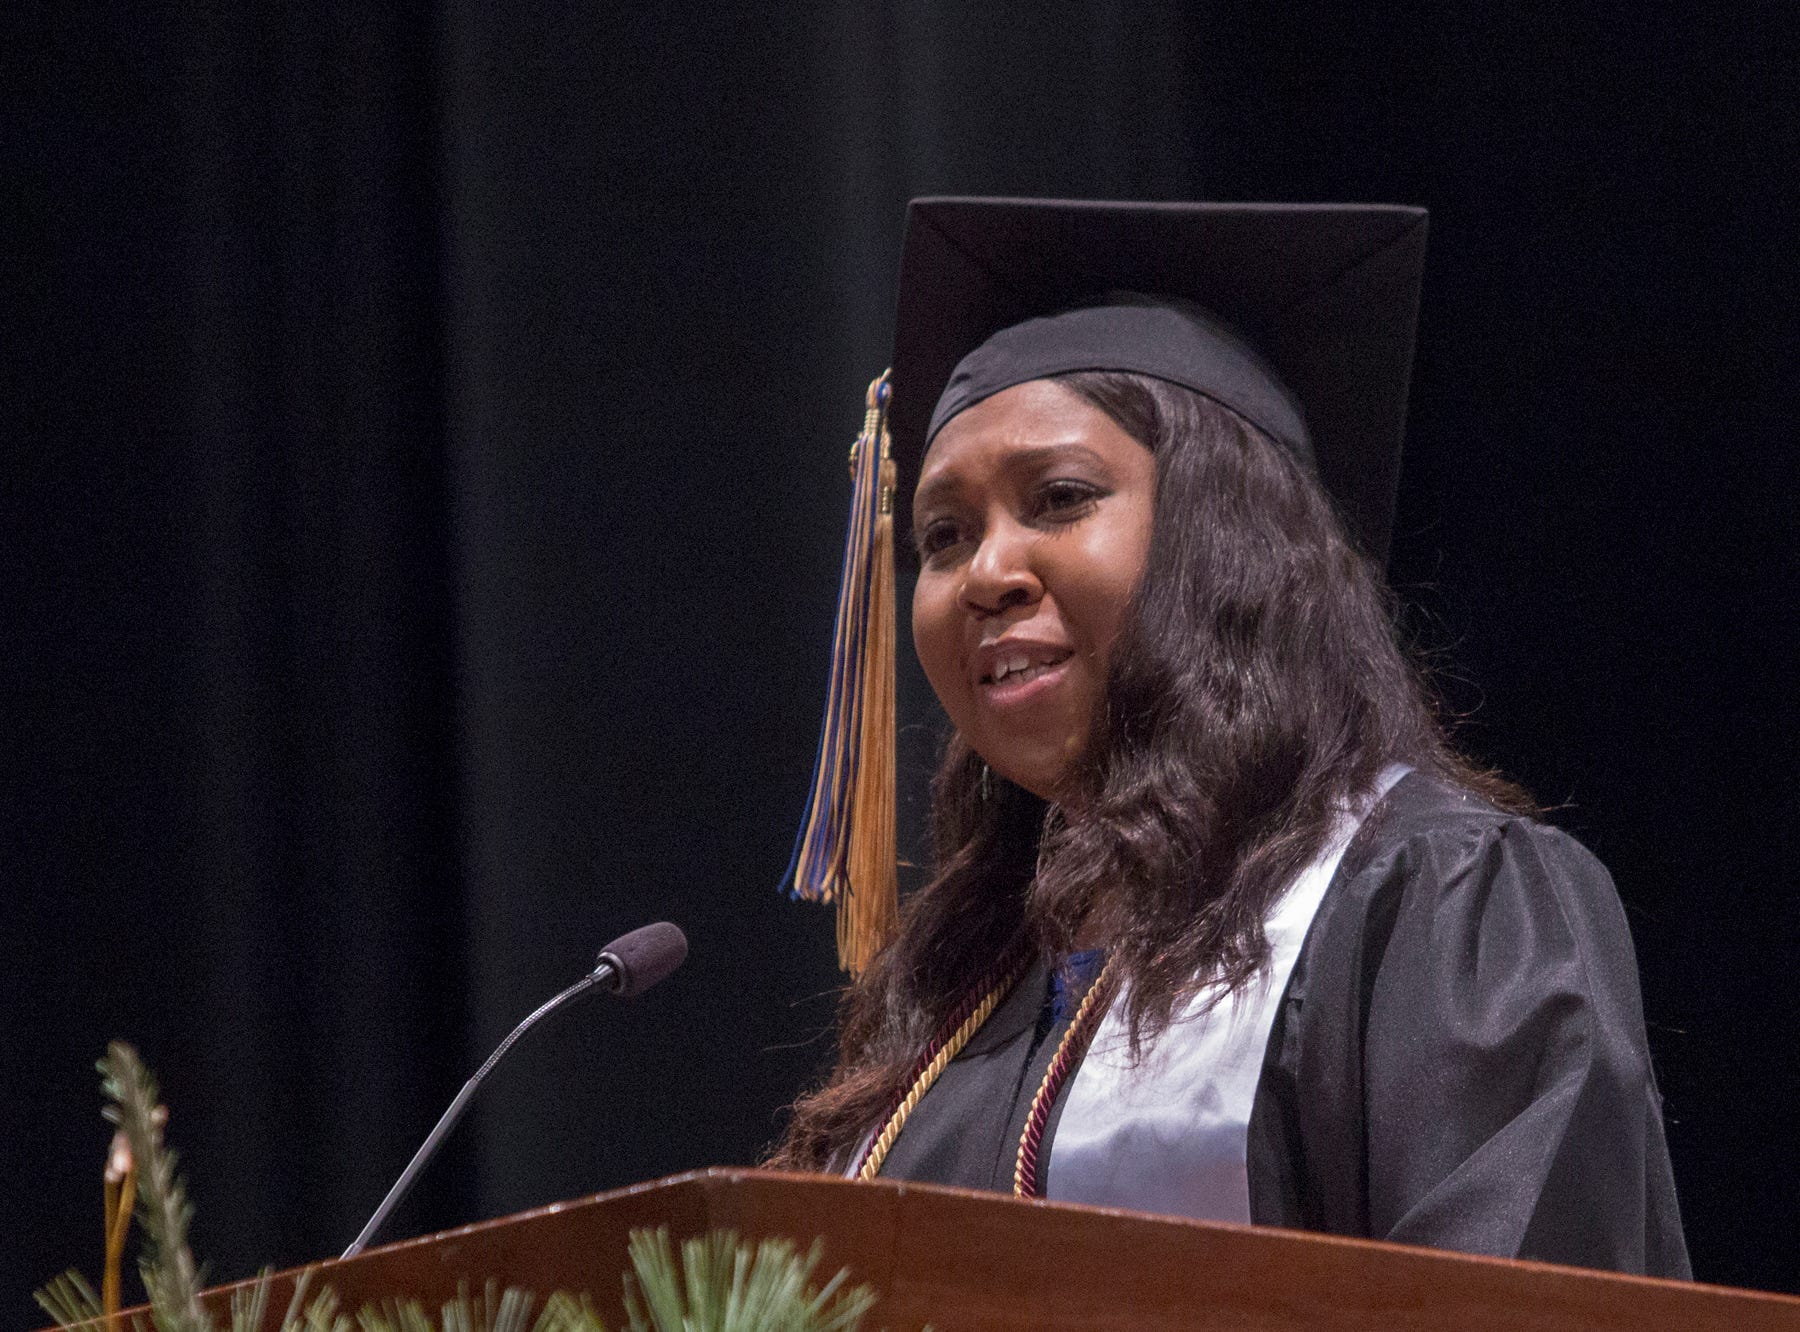 Pam Suber, an adult and graduate studies social work major, gives one of two student speeches. Mars Hill University conferred bachelor's degrees on 71 graduates on Dec. 14, 2018.